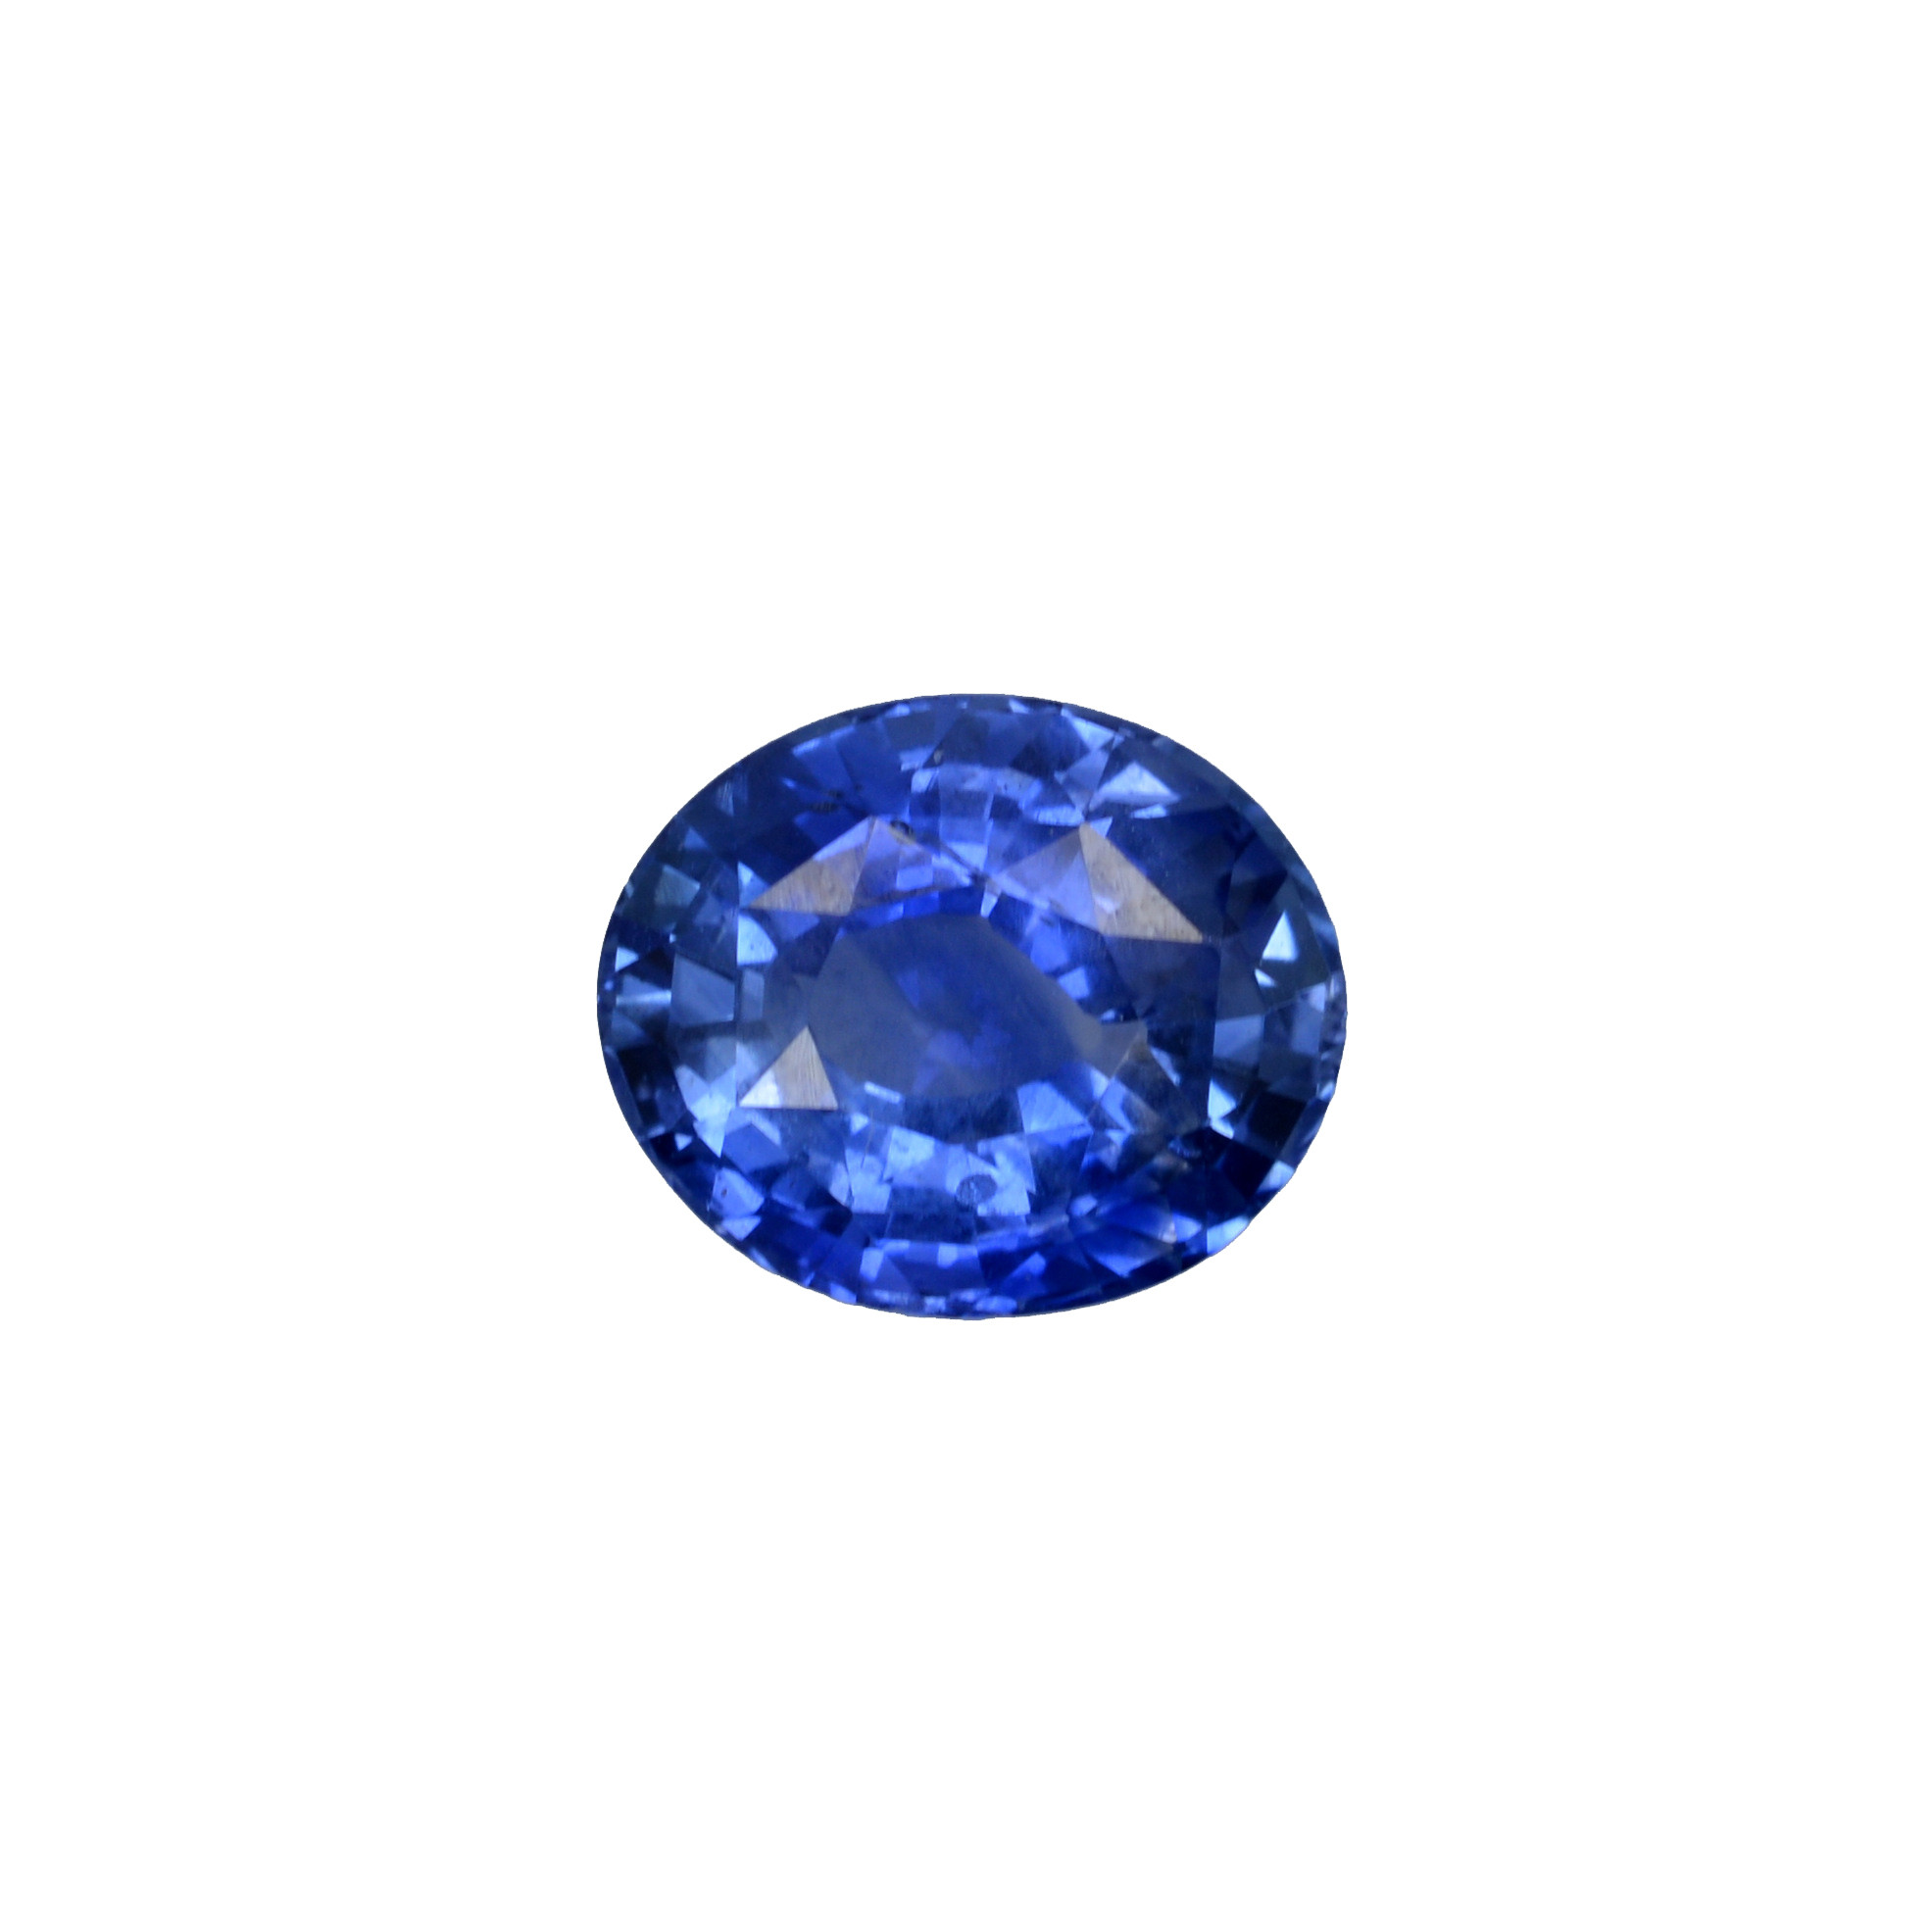 n royal gems carat prestige gemstone store sapphire product unheated blue